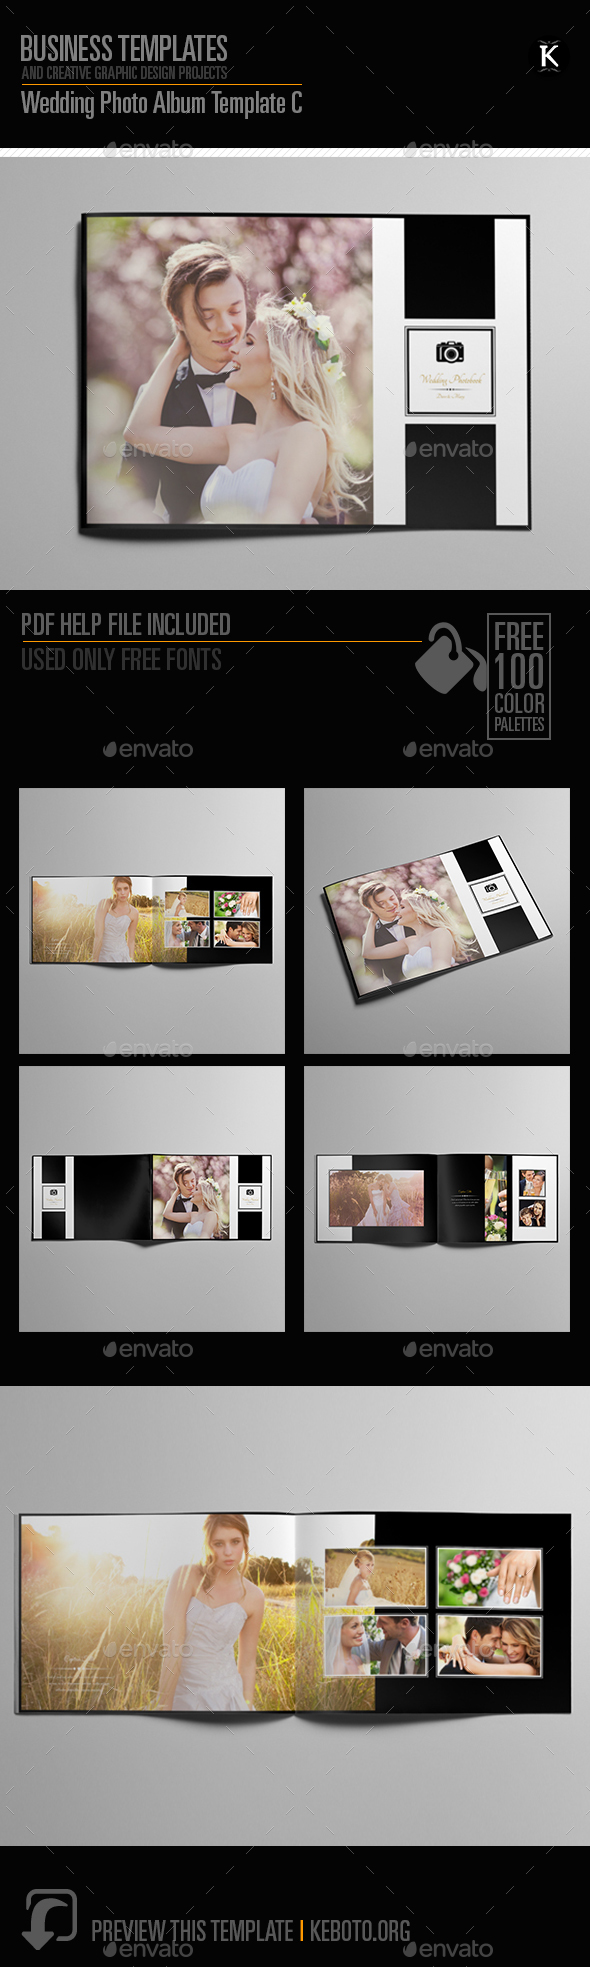 Wedding Photo Album Template C - Photo Albums Print Templates